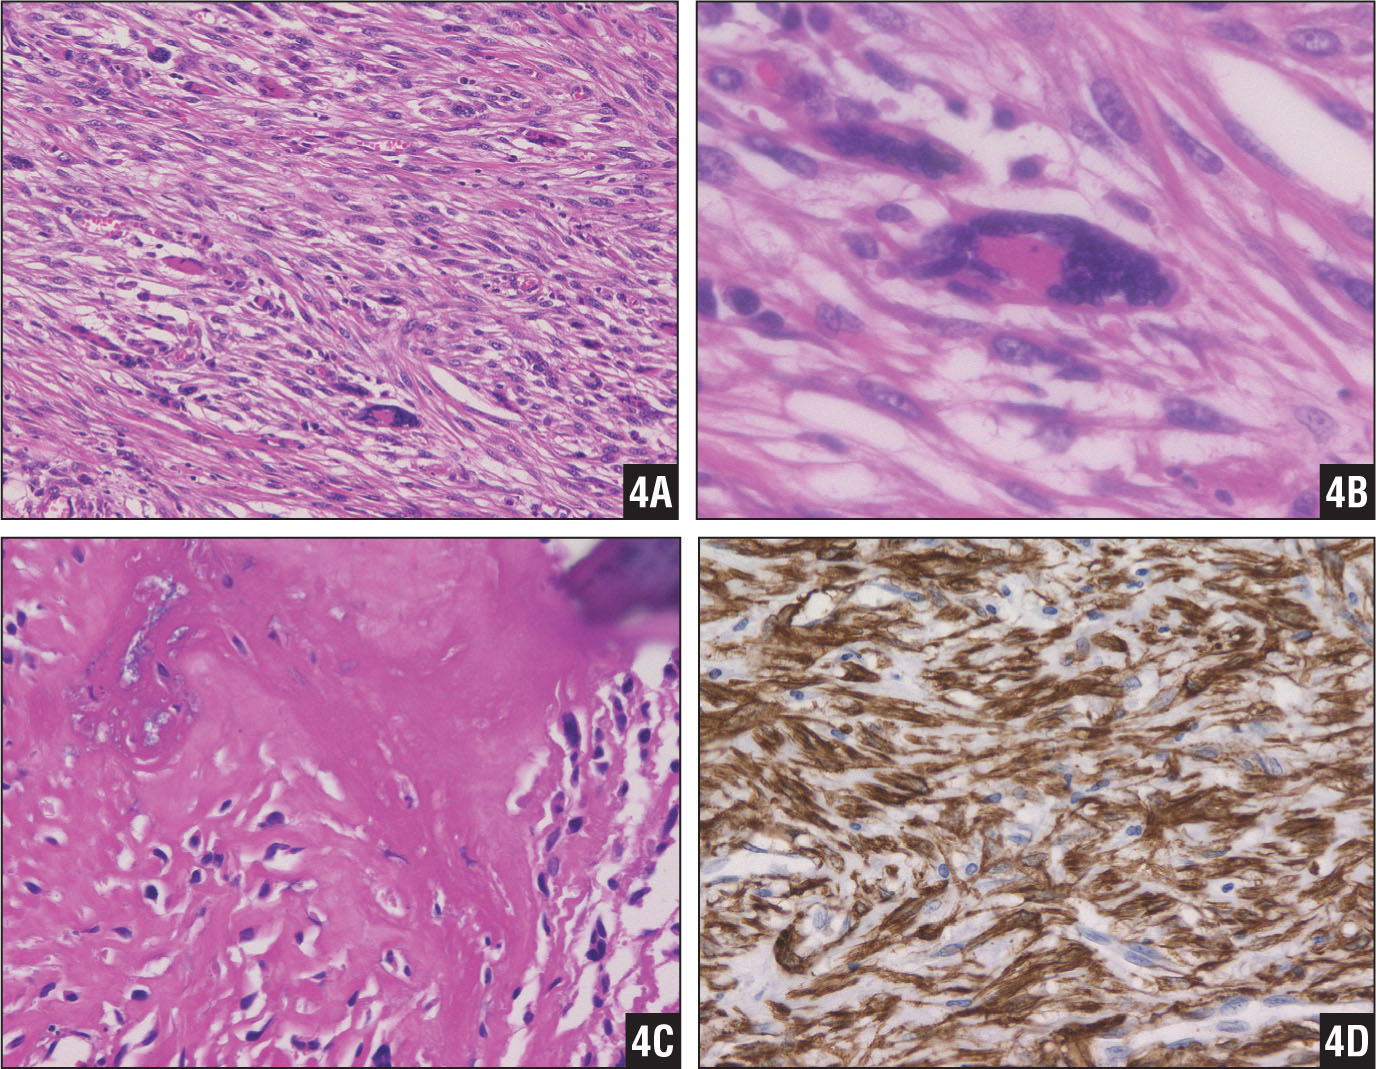 The tumor contained spindle cells in a predominantly disorderly pattern intermixed with herringbone or pericytomatous patterns (hematoxylin-eosin stain, original magnification ×40) (A). High-power view of the giant multinucleated cell (hematoxylin-eosin stain, original magnification ×100) (B). Osteoid tissue was provided, indicating the transformation to osteosarcoma (hematoxylin-eosin stain, original magnification ×40) (C). Smooth muscle antibody indicated a malignant transformation to leiomyosarcoma (αsmooth muscle antibody, original magnification ×100) (D).